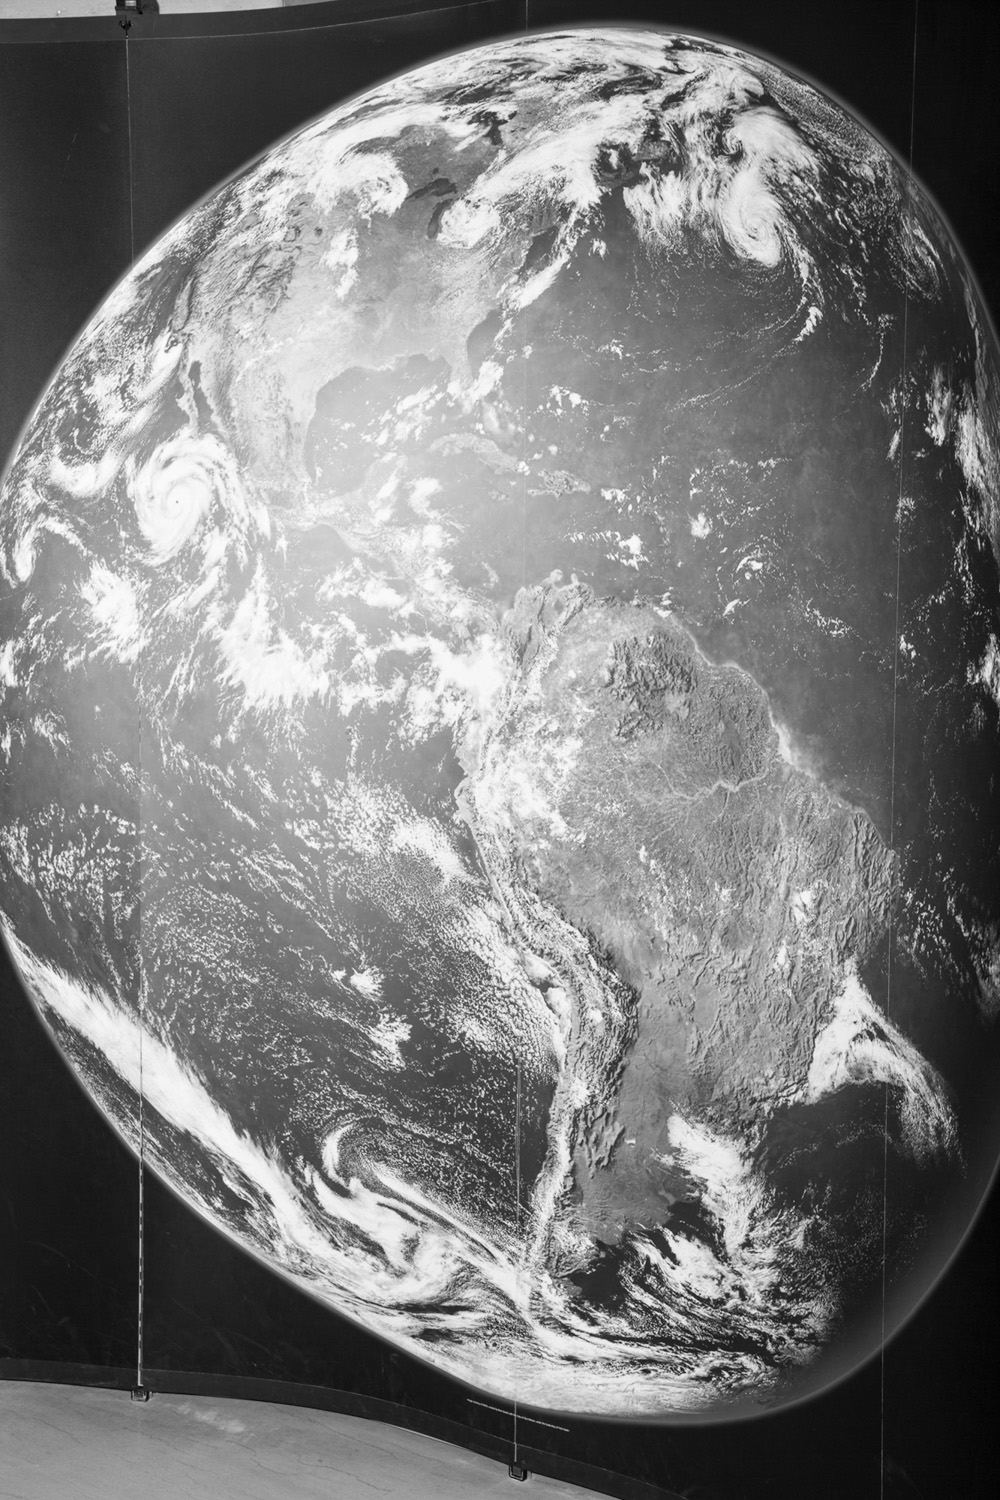 """The Earth, Museum of Natural History, University of Michigan , 2015, Pigment print, 23.25"""" x 15.5"""""""